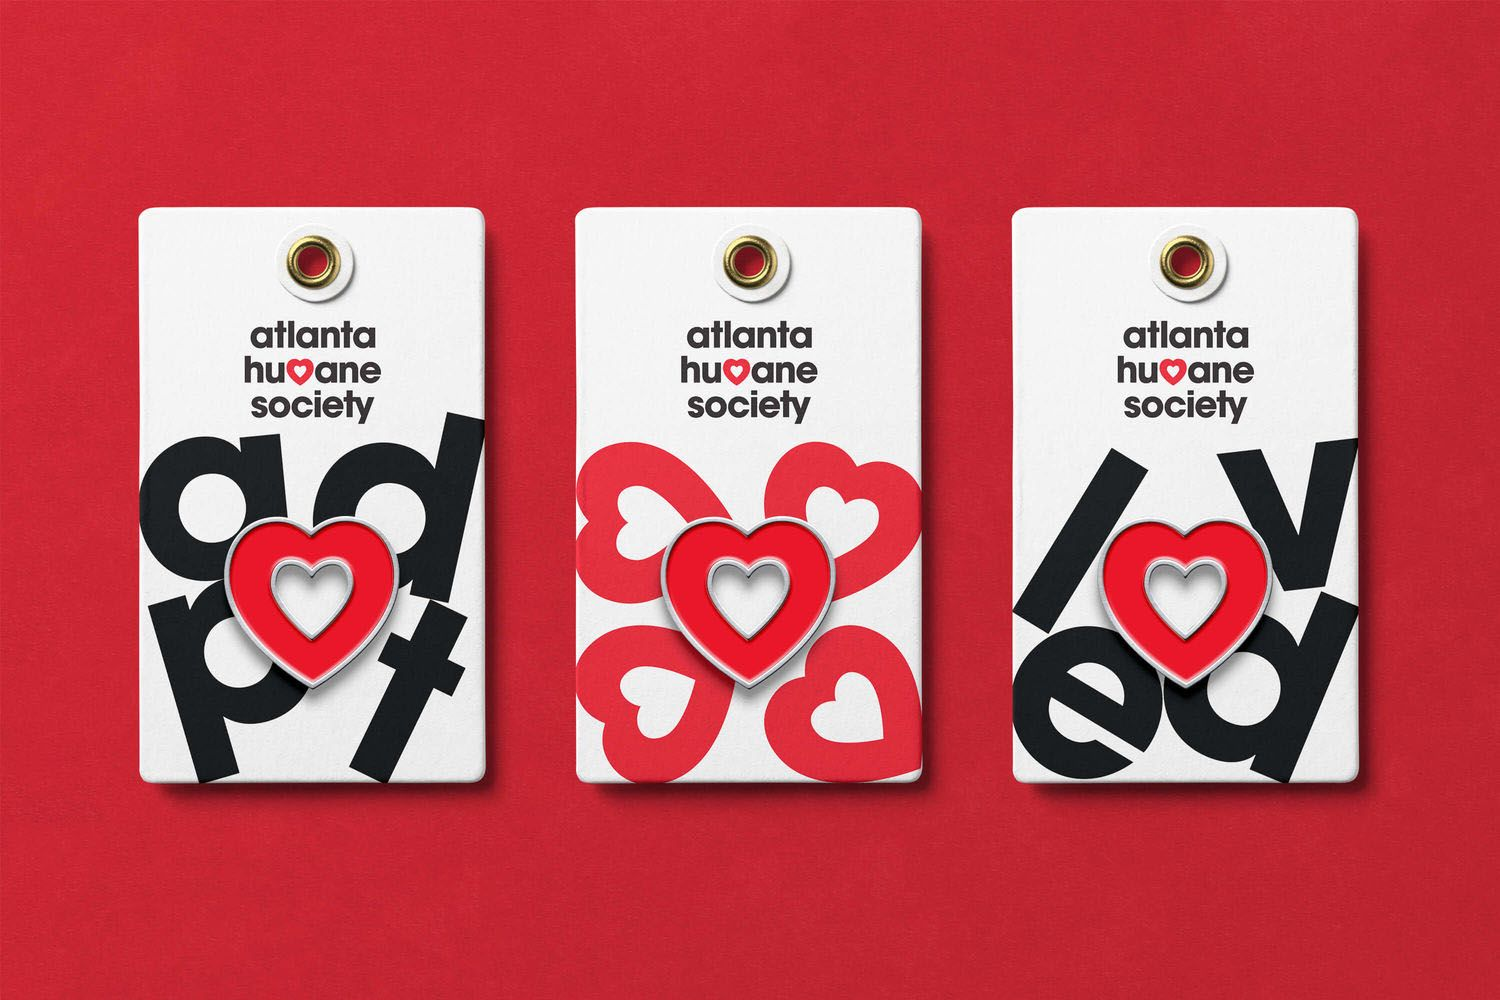 Brand New New Logo And Identity For Atlanta Humane Society By Matchstic Humane Society Humane Society Design Humane Society Fundraiser